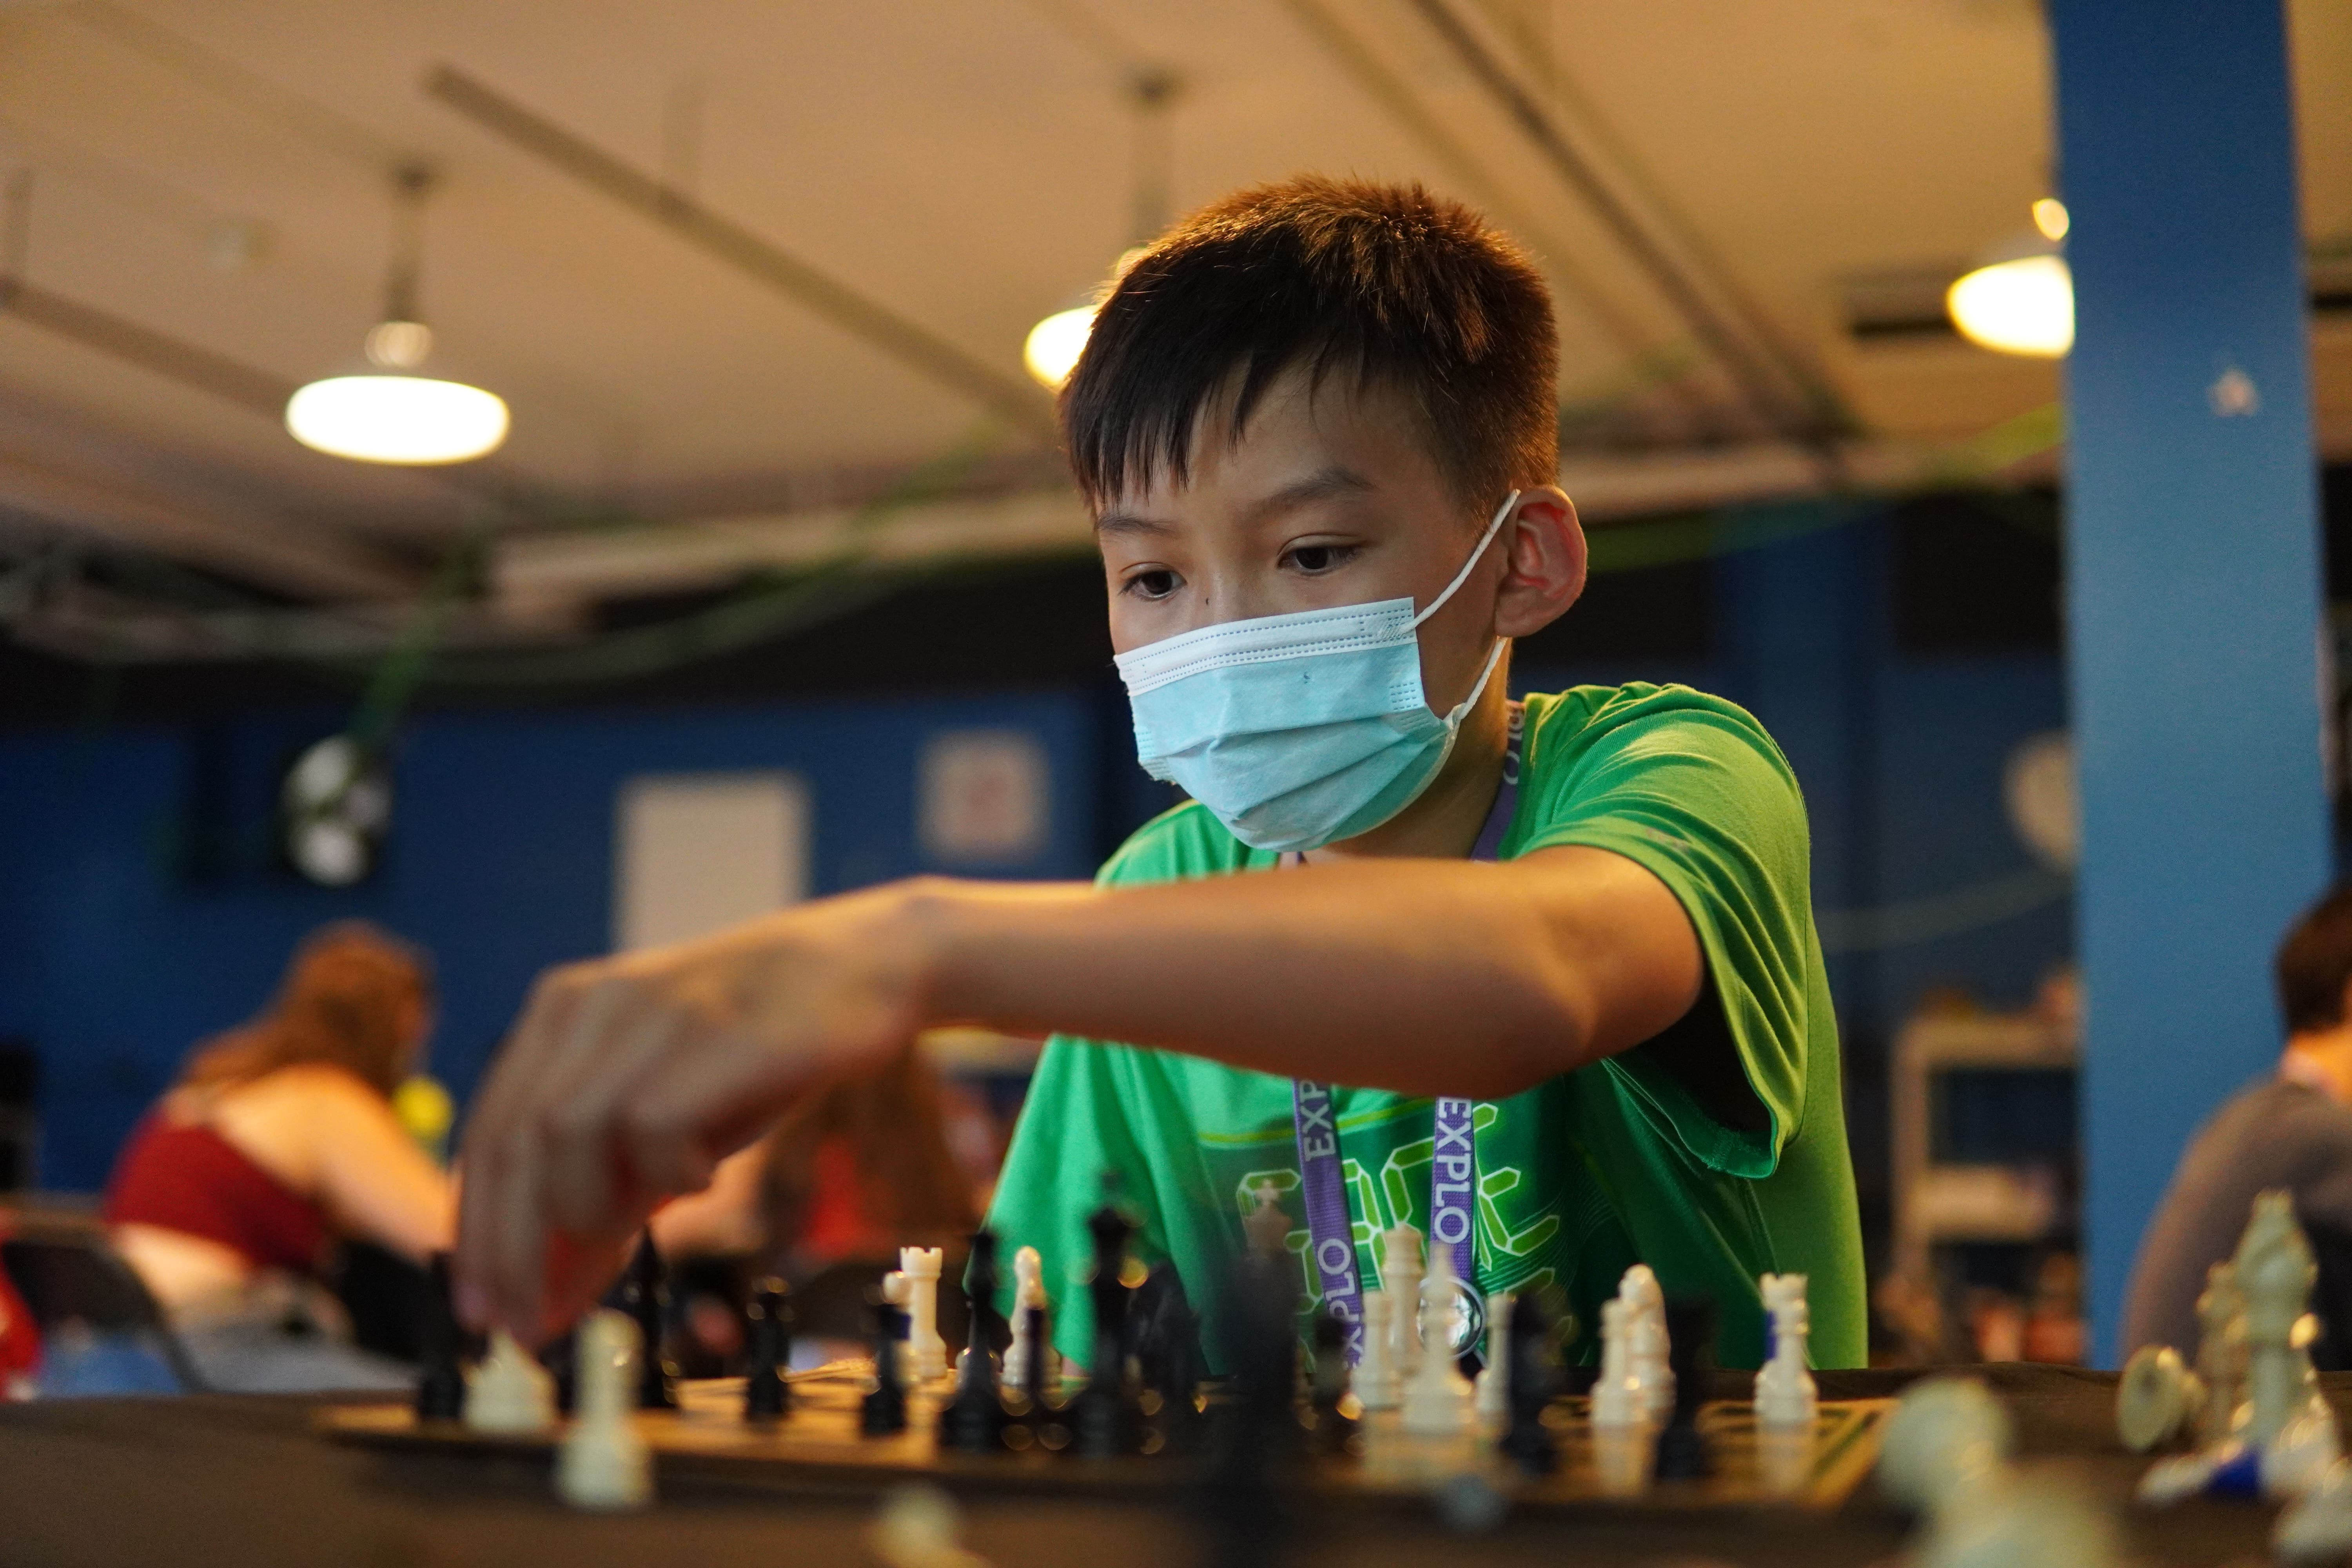 A student in a green shirt moves a chess piece across the board.